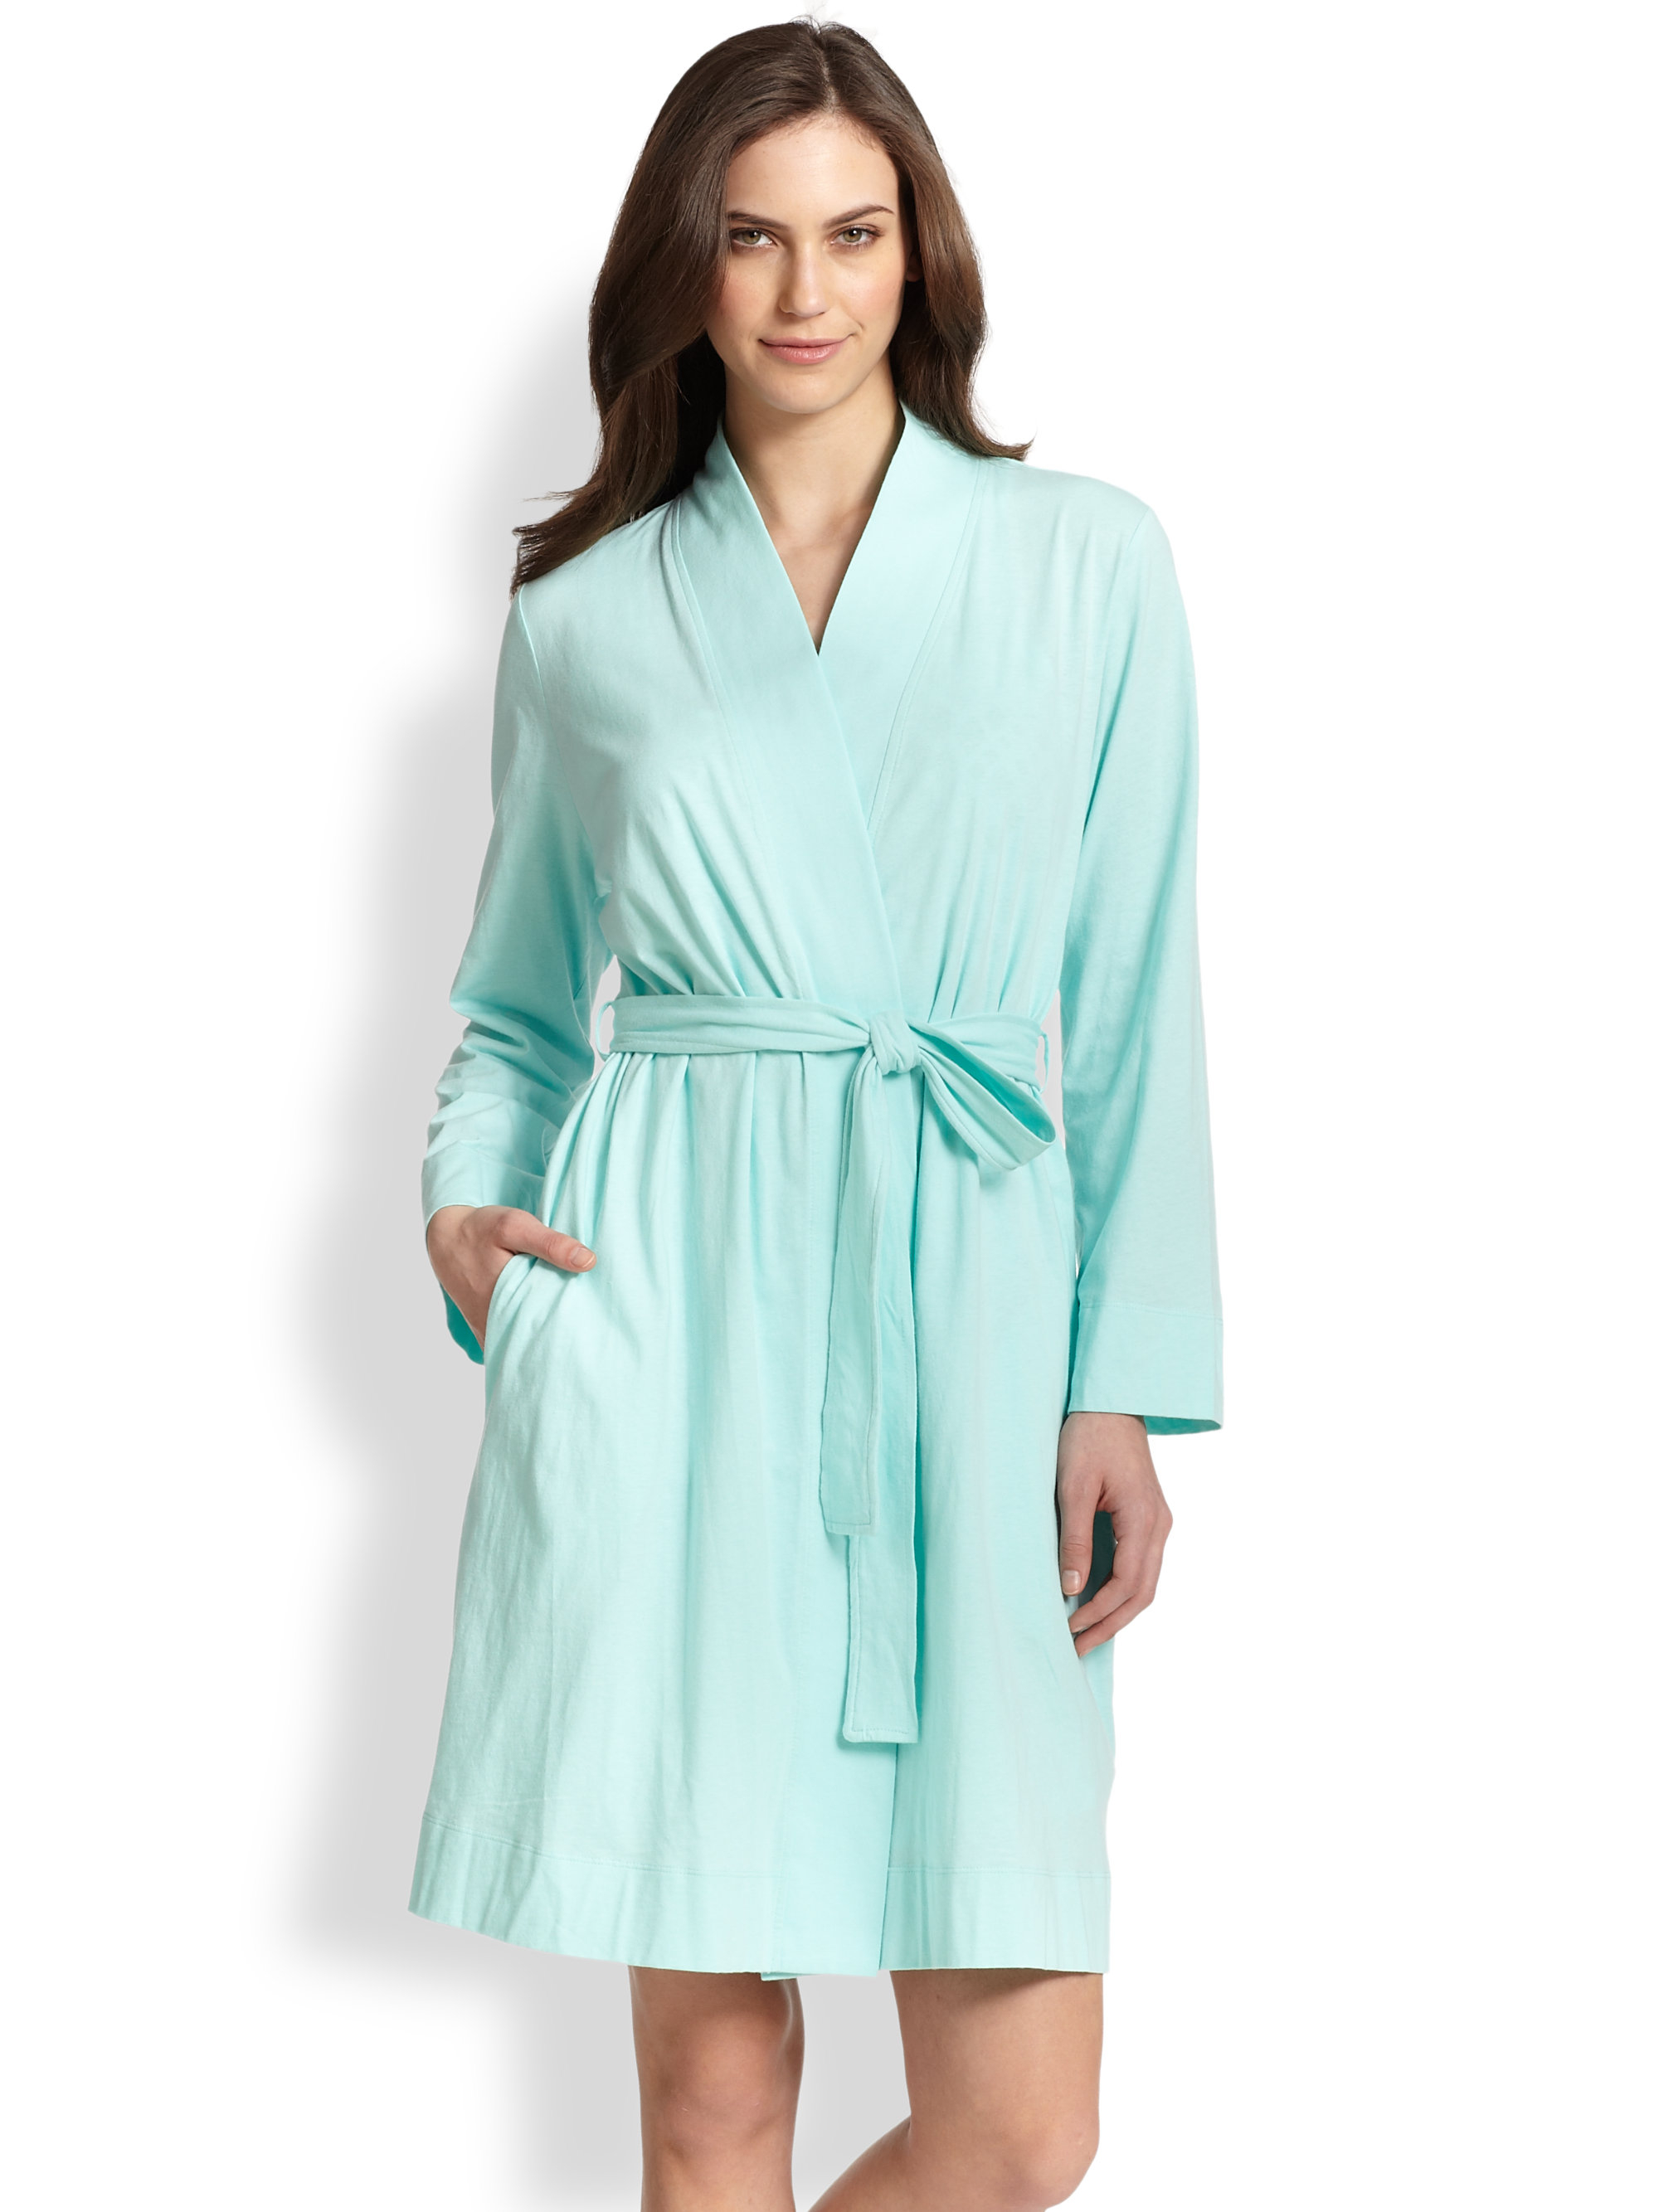 Find cute robe at ShopStyle. Shop the latest collection of cute robe from the most popular stores - all in one place.